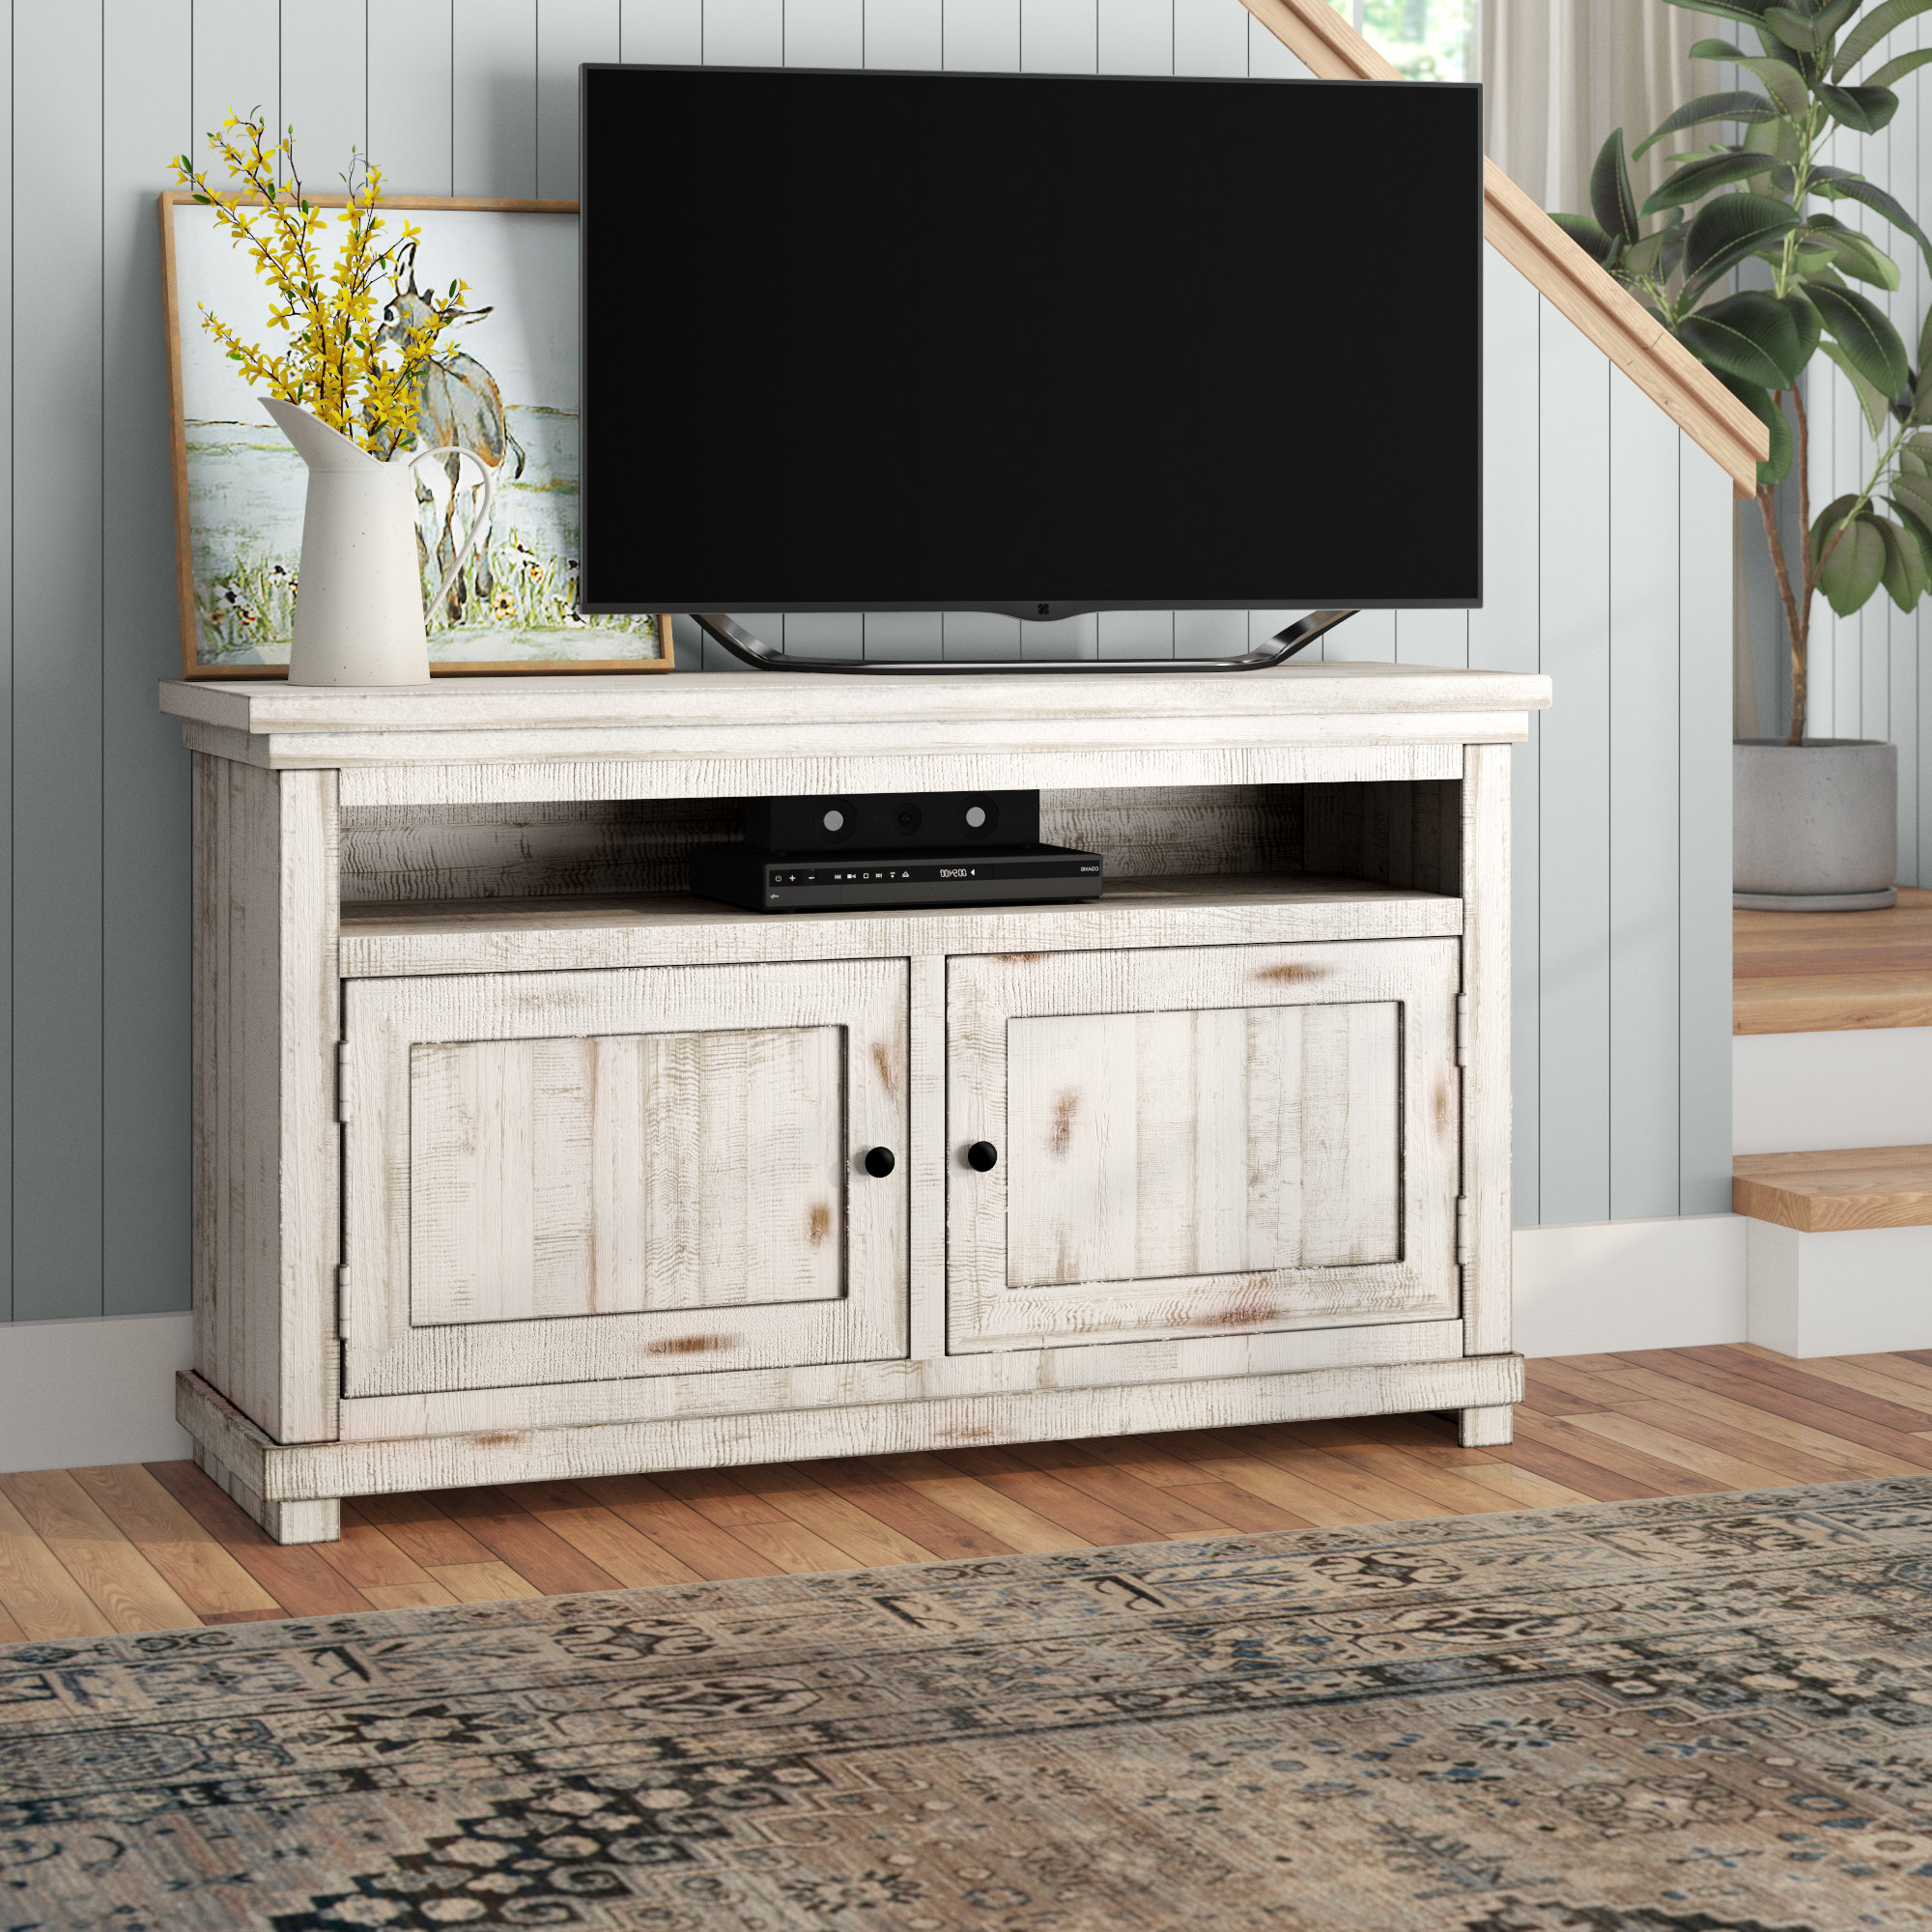 72 Inch Tv Stand | Wayfair Intended For Kenzie 60 Inch Open Display Tv Stands (View 7 of 20)